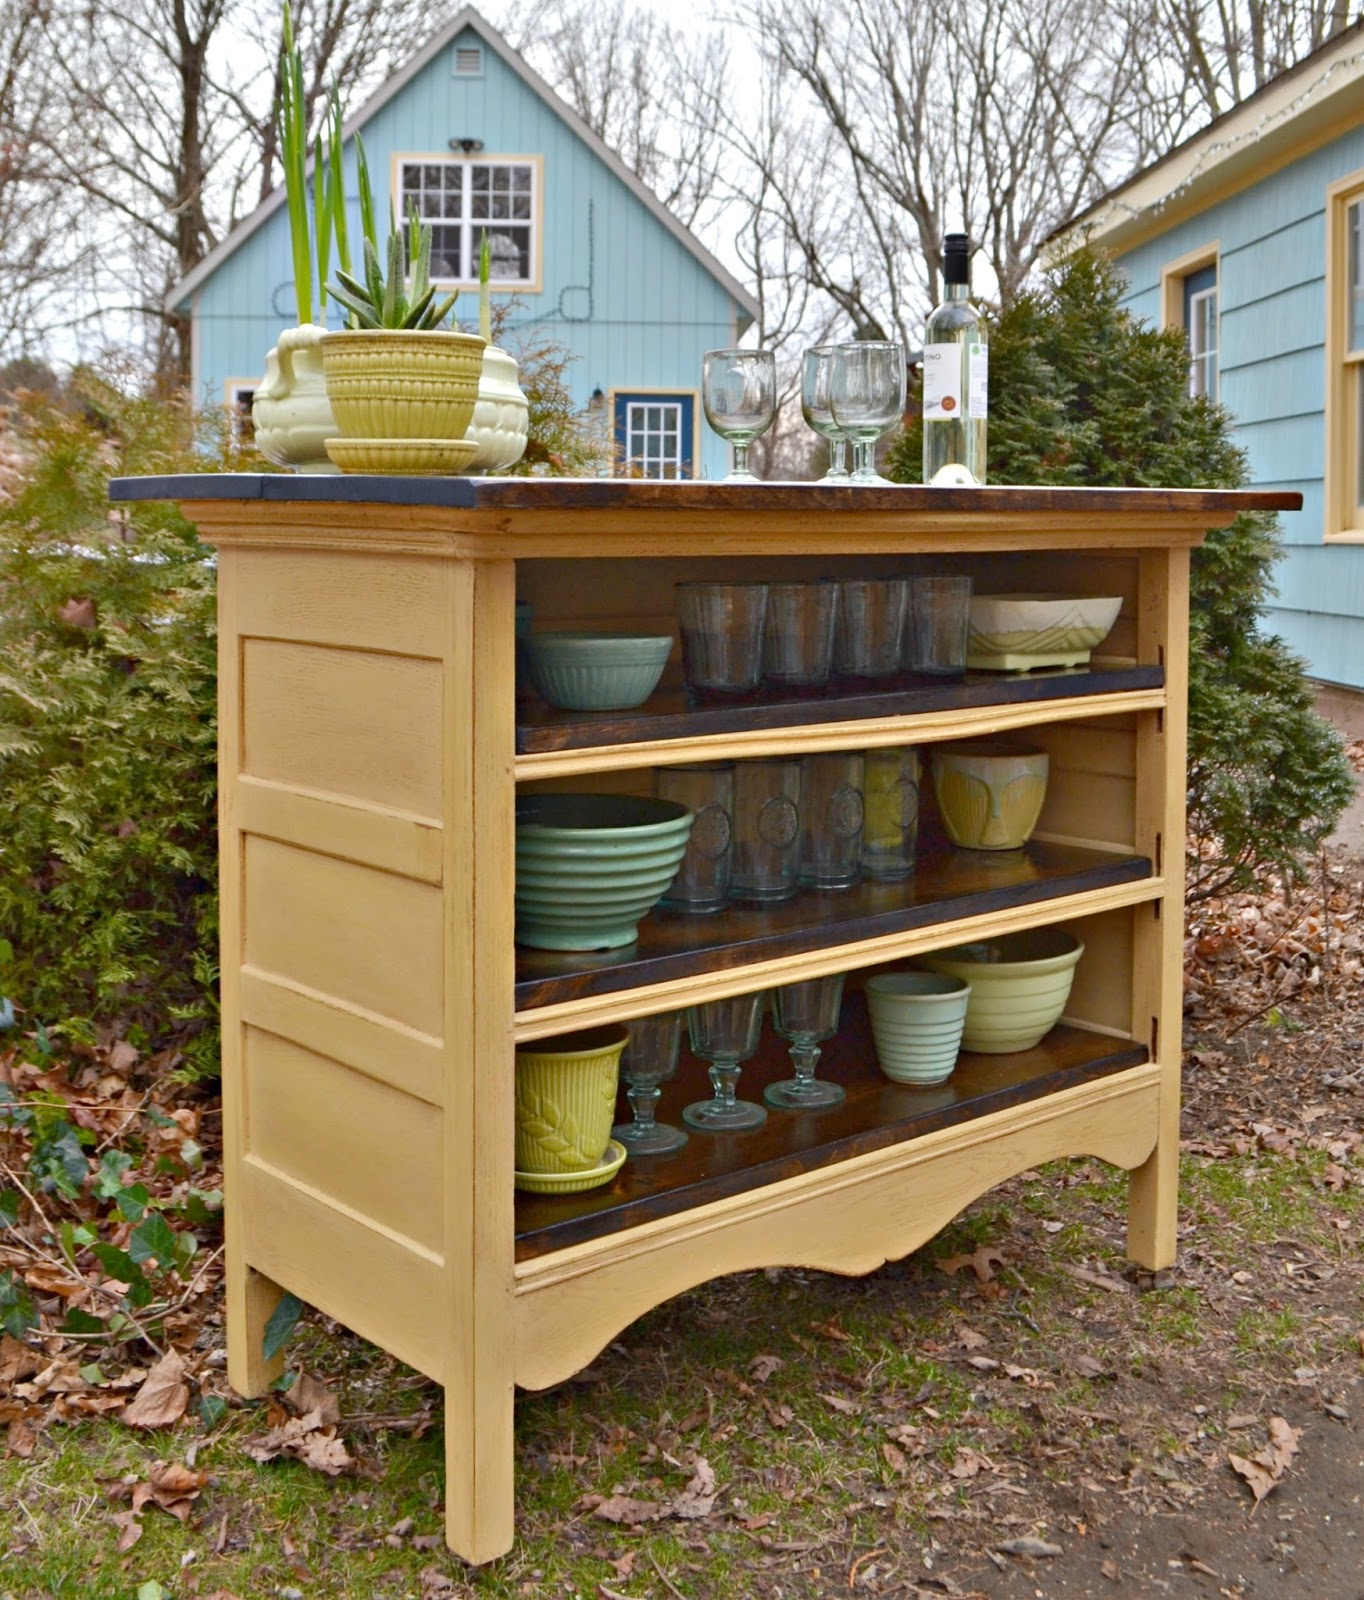 Repurposed Antique Dresser As A Kitchen Island With A: Heir And Space: An Antique Dresser Turned Kitchen Island